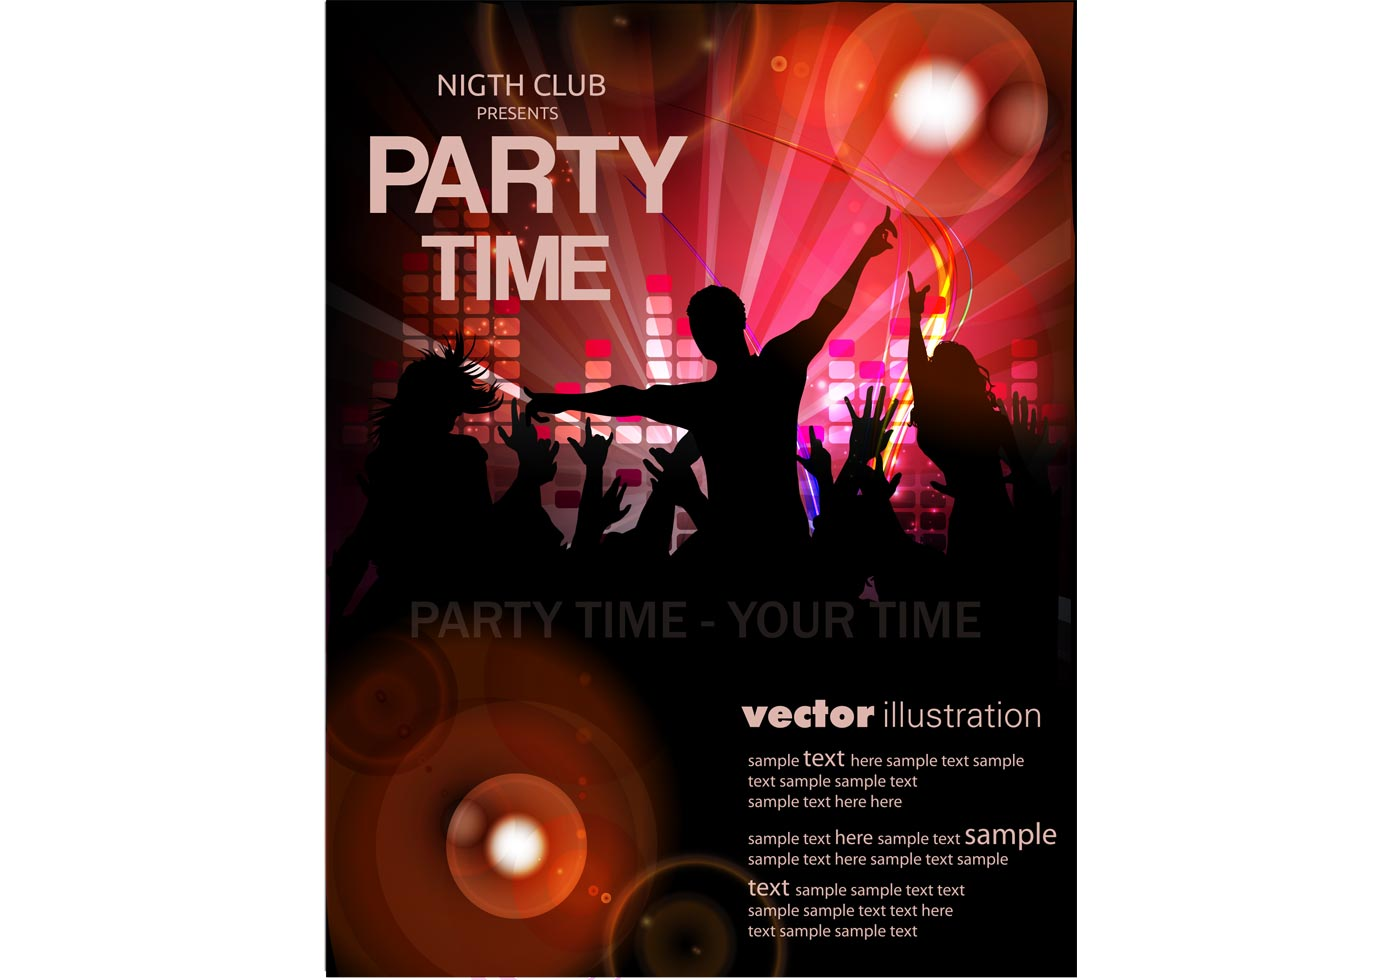 template party flyer vector art stock graphics vector template flyer